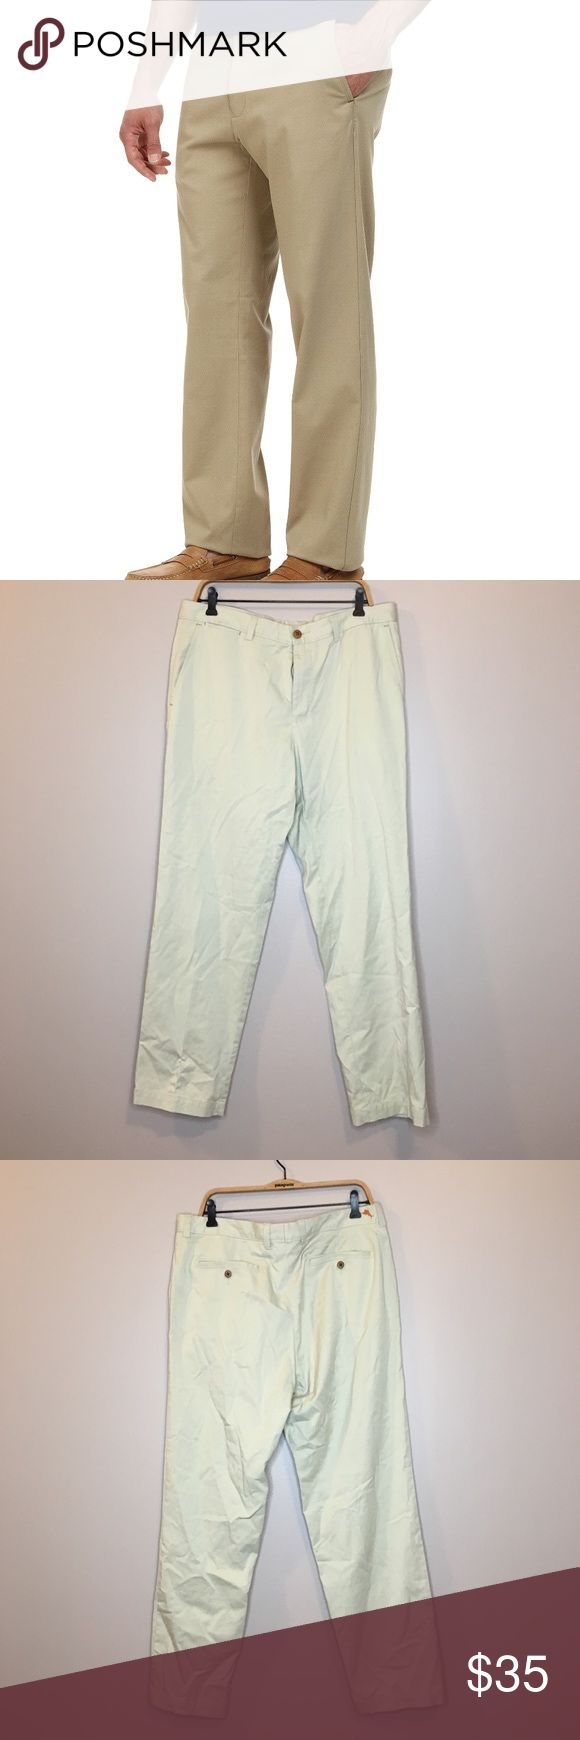 Tommy Bahama Men's Beige Pants 36x32 Like new Tommy Bahama Men's Khaki beige pants in size 36x32. Materials: 52% cotton, 45% Tercel lyocell, 3% spandex Tommy Bahama Pants Chinos & Khakis